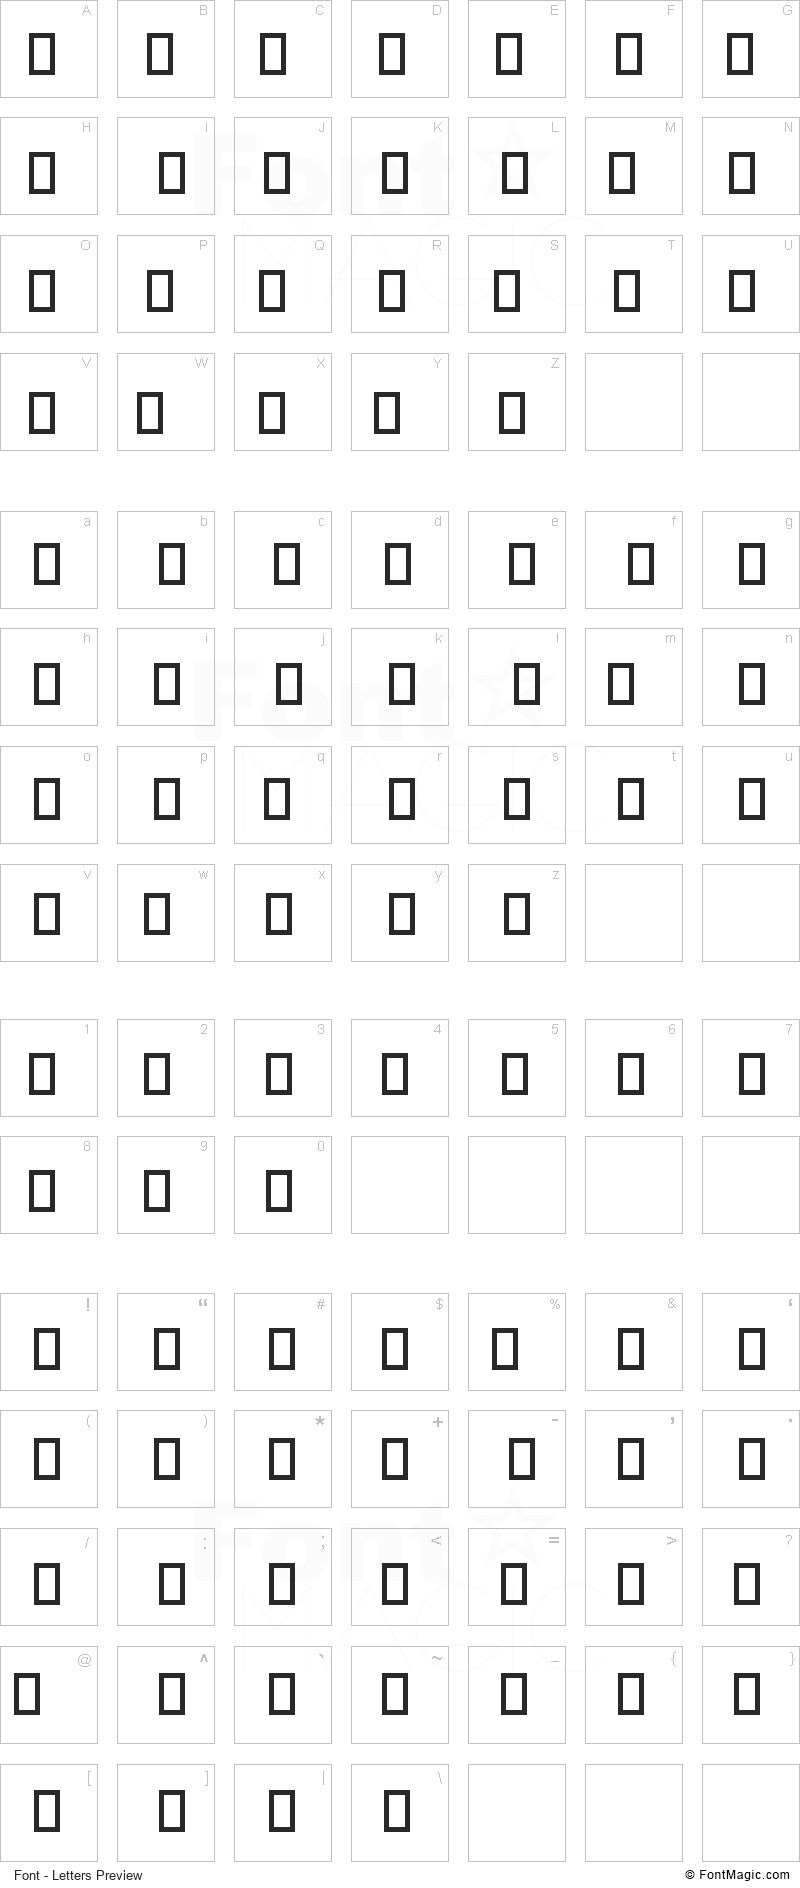 Gym Font - All Latters Preview Chart